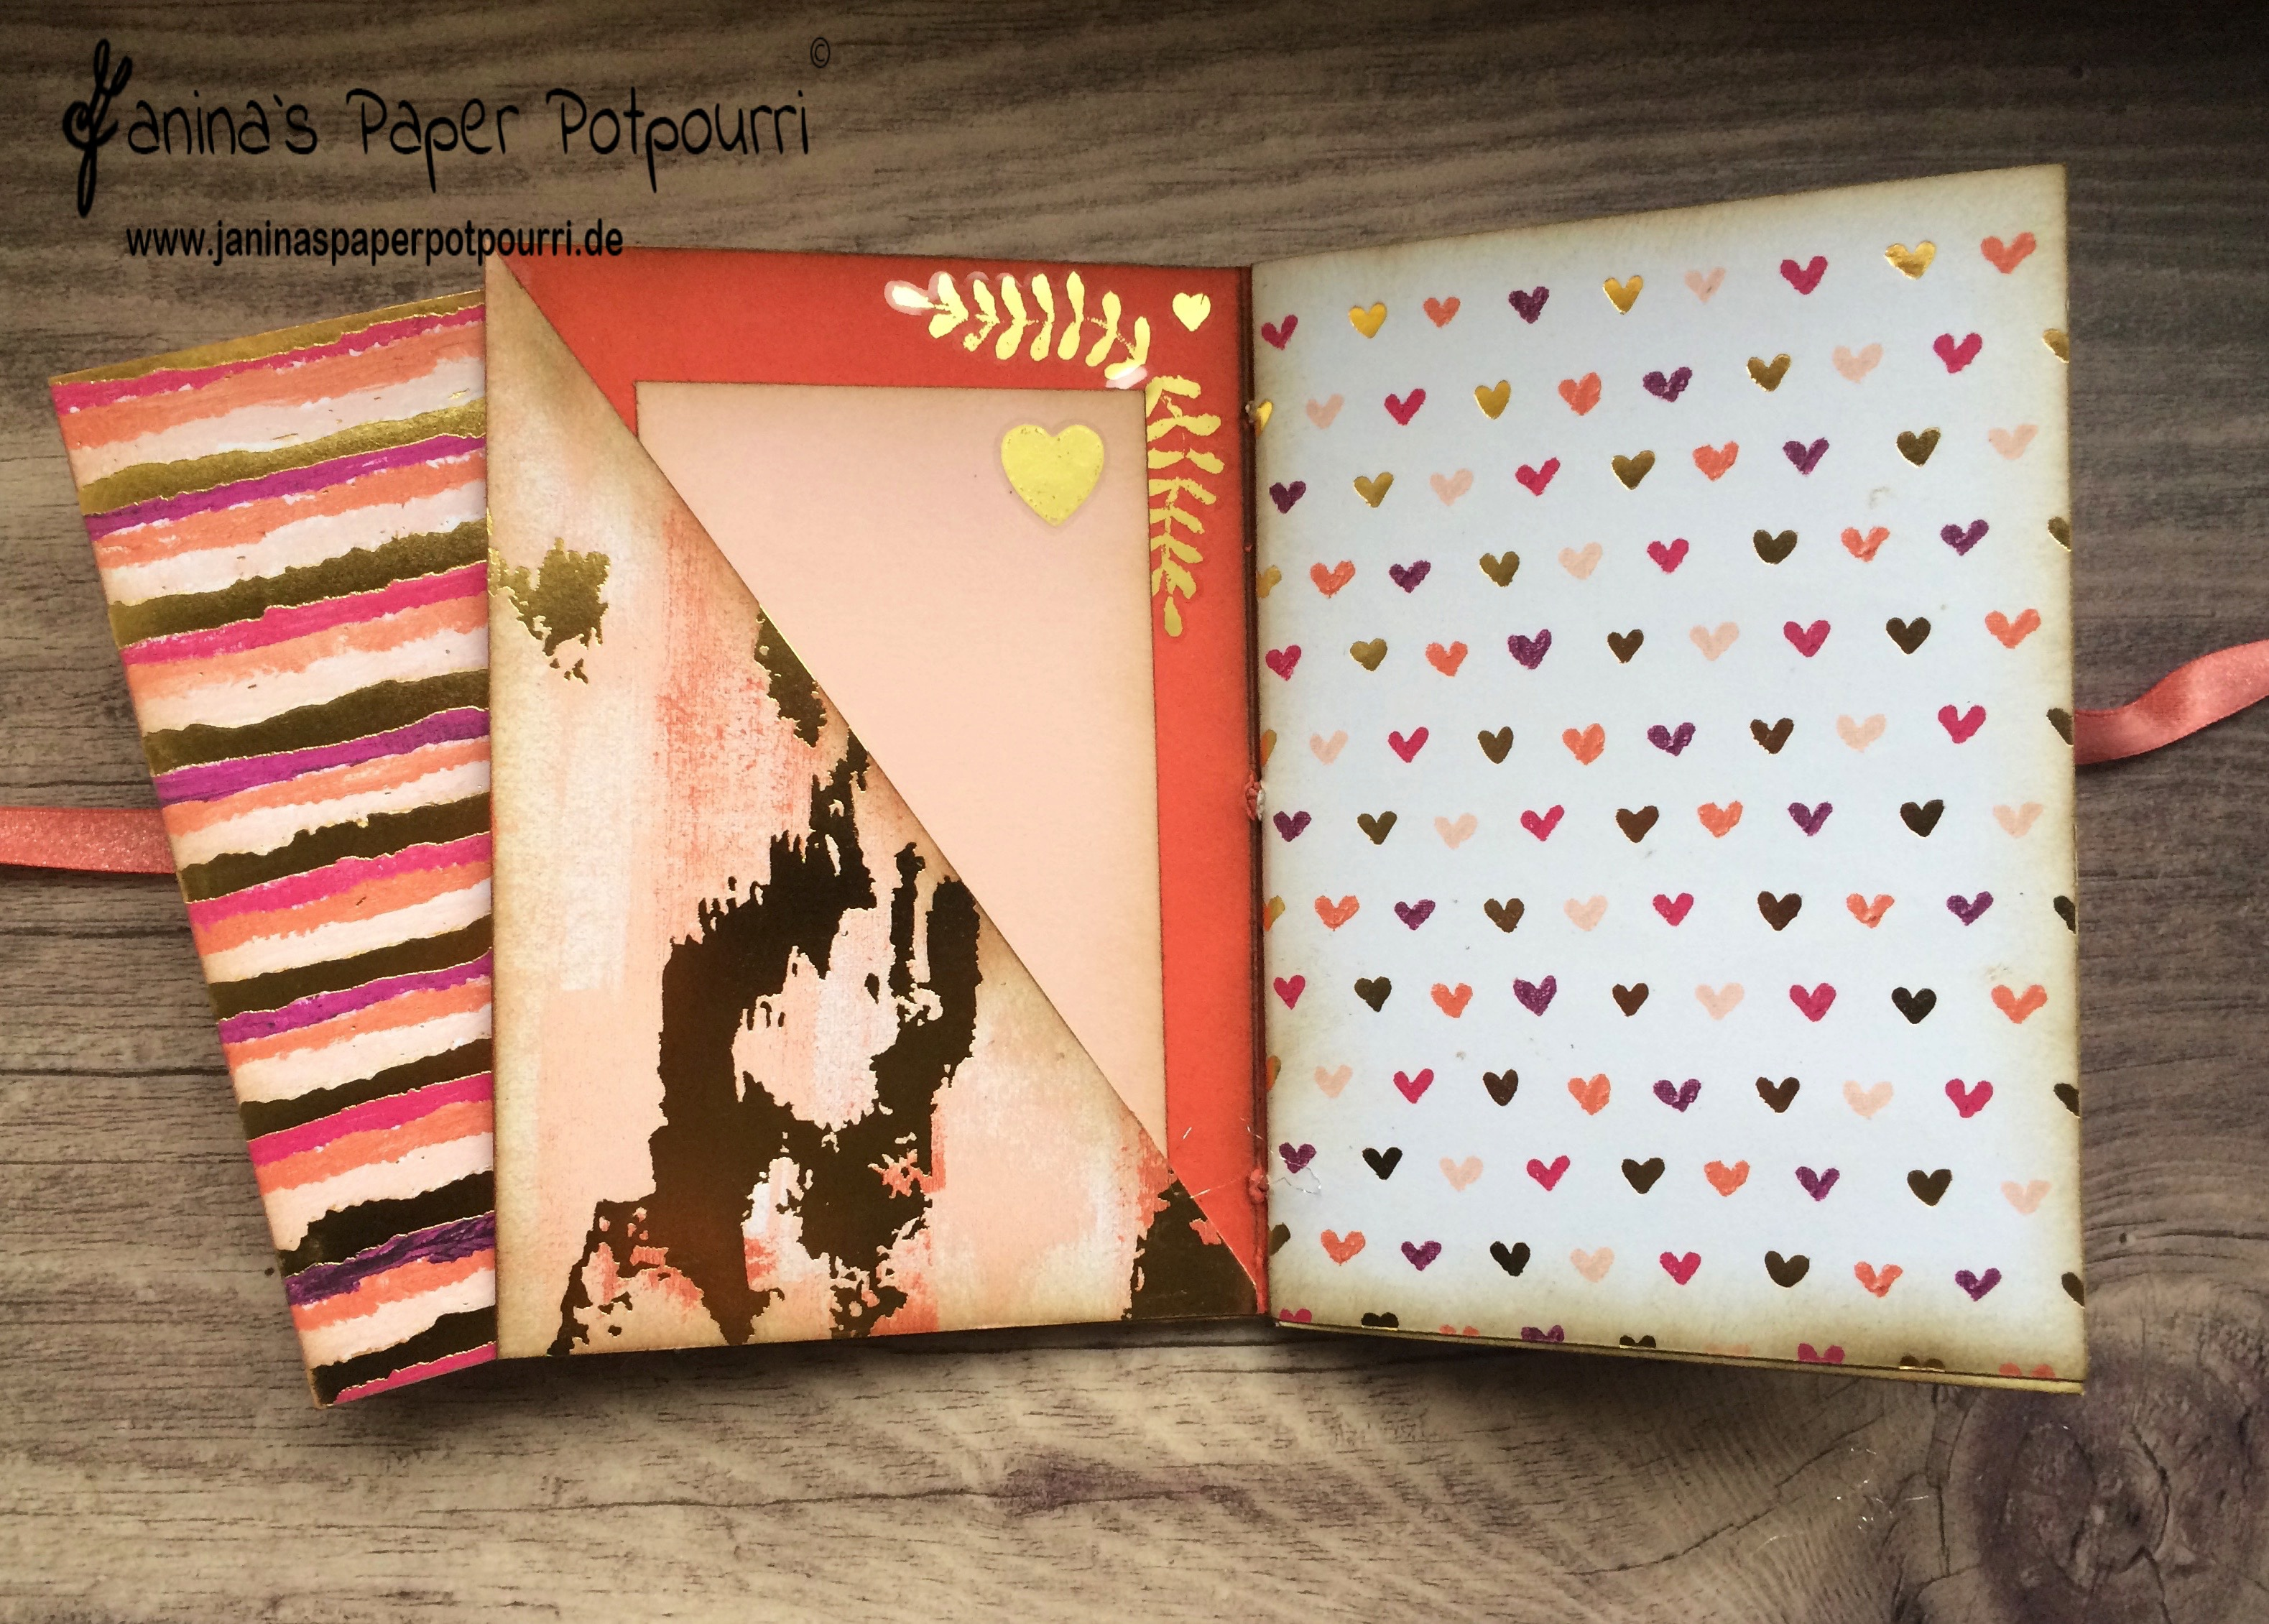 Cd Bekleben Envelope Mini Album Quotlove Quot Mit Dem Produktpaket Quotgemalt